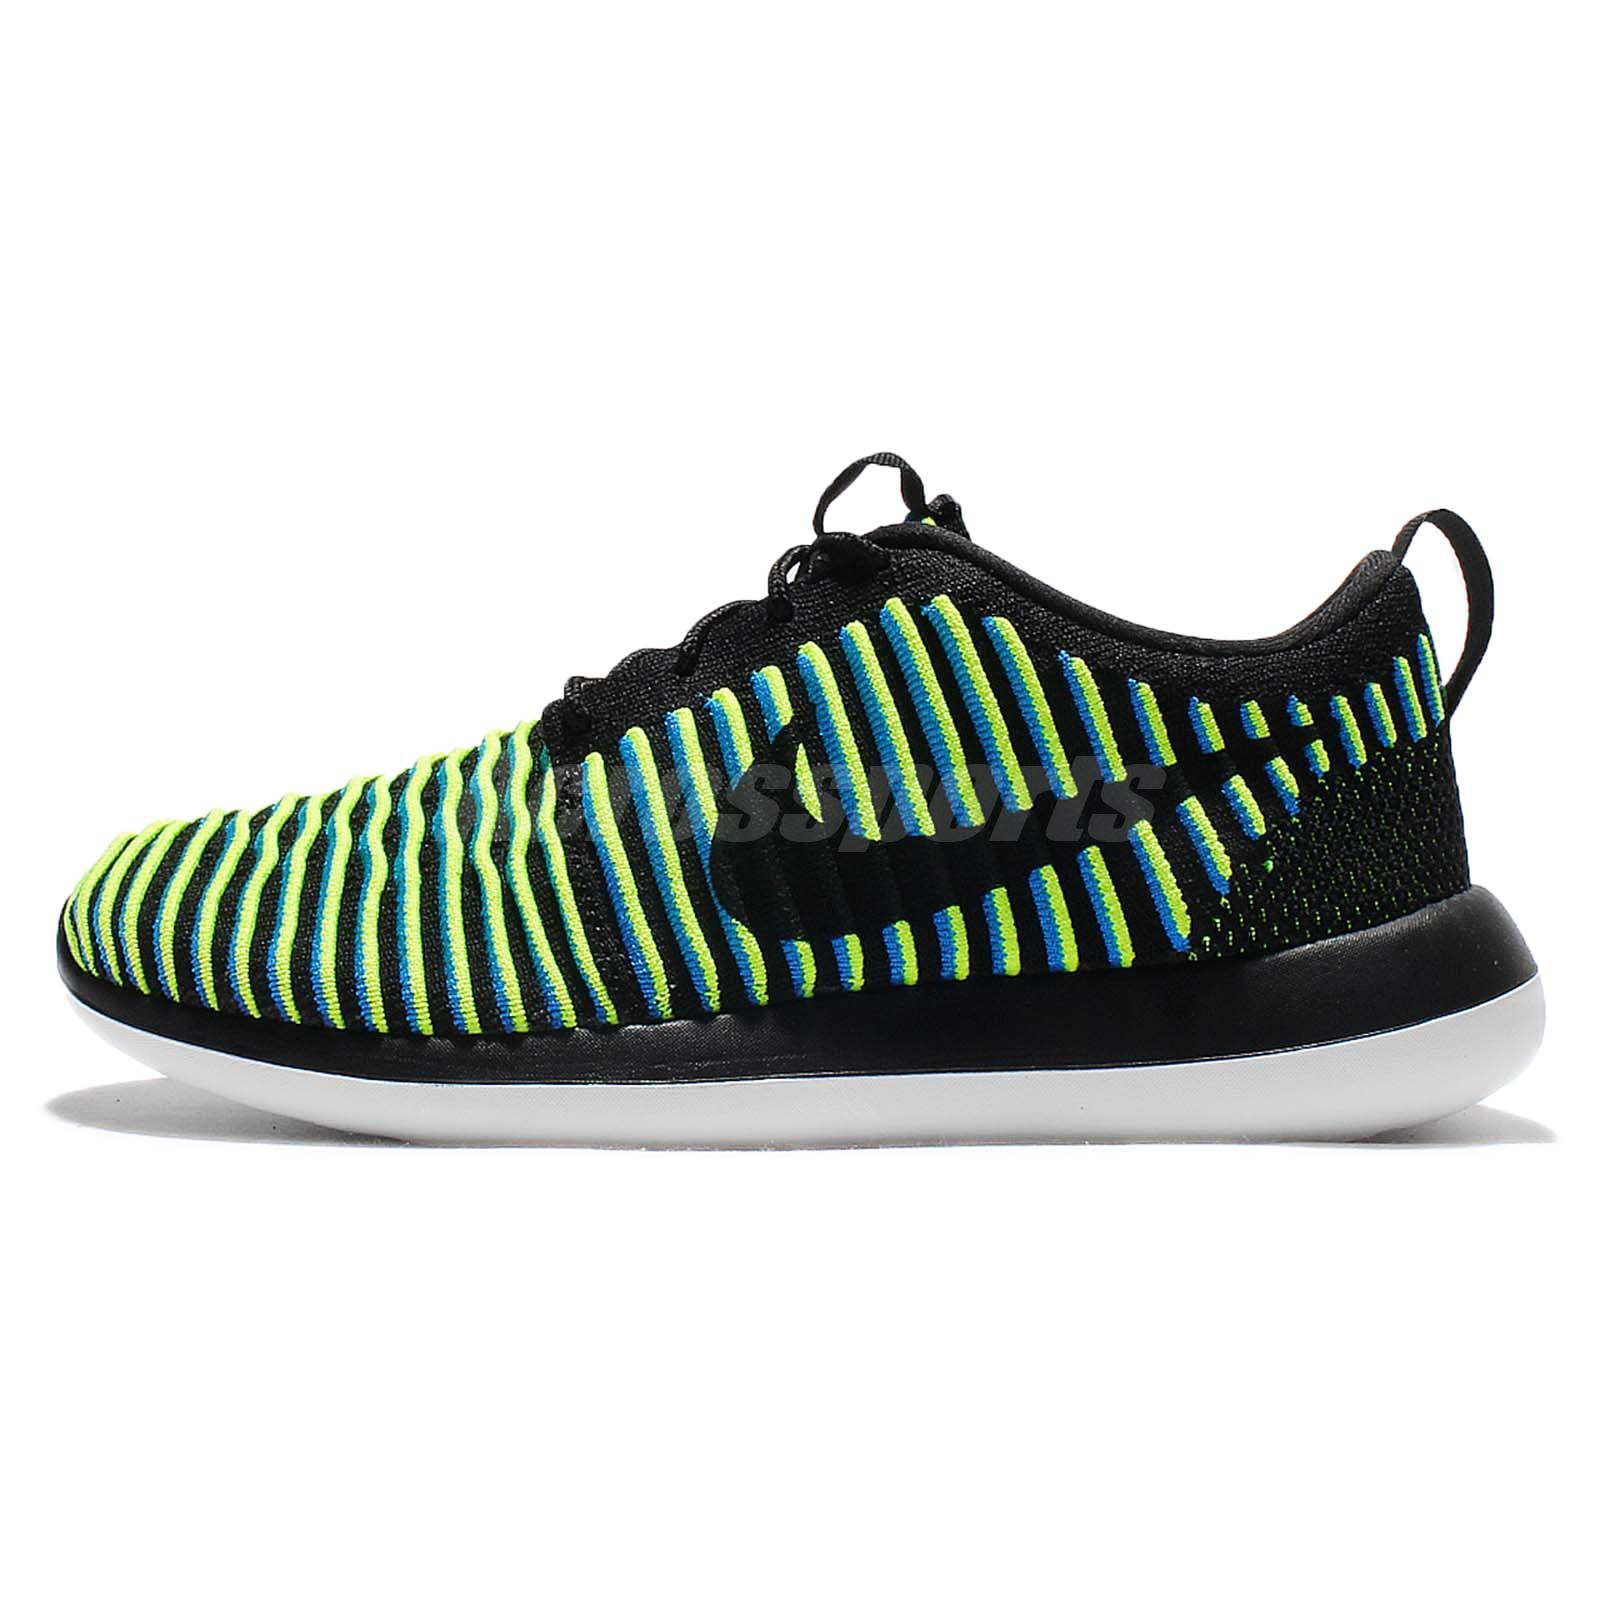 cheaper a5861 c99fe ... Wmns Nike Roshe Two Flyknit 2 Rosherun Black Volt Women Running Shoes  844929-003 ...